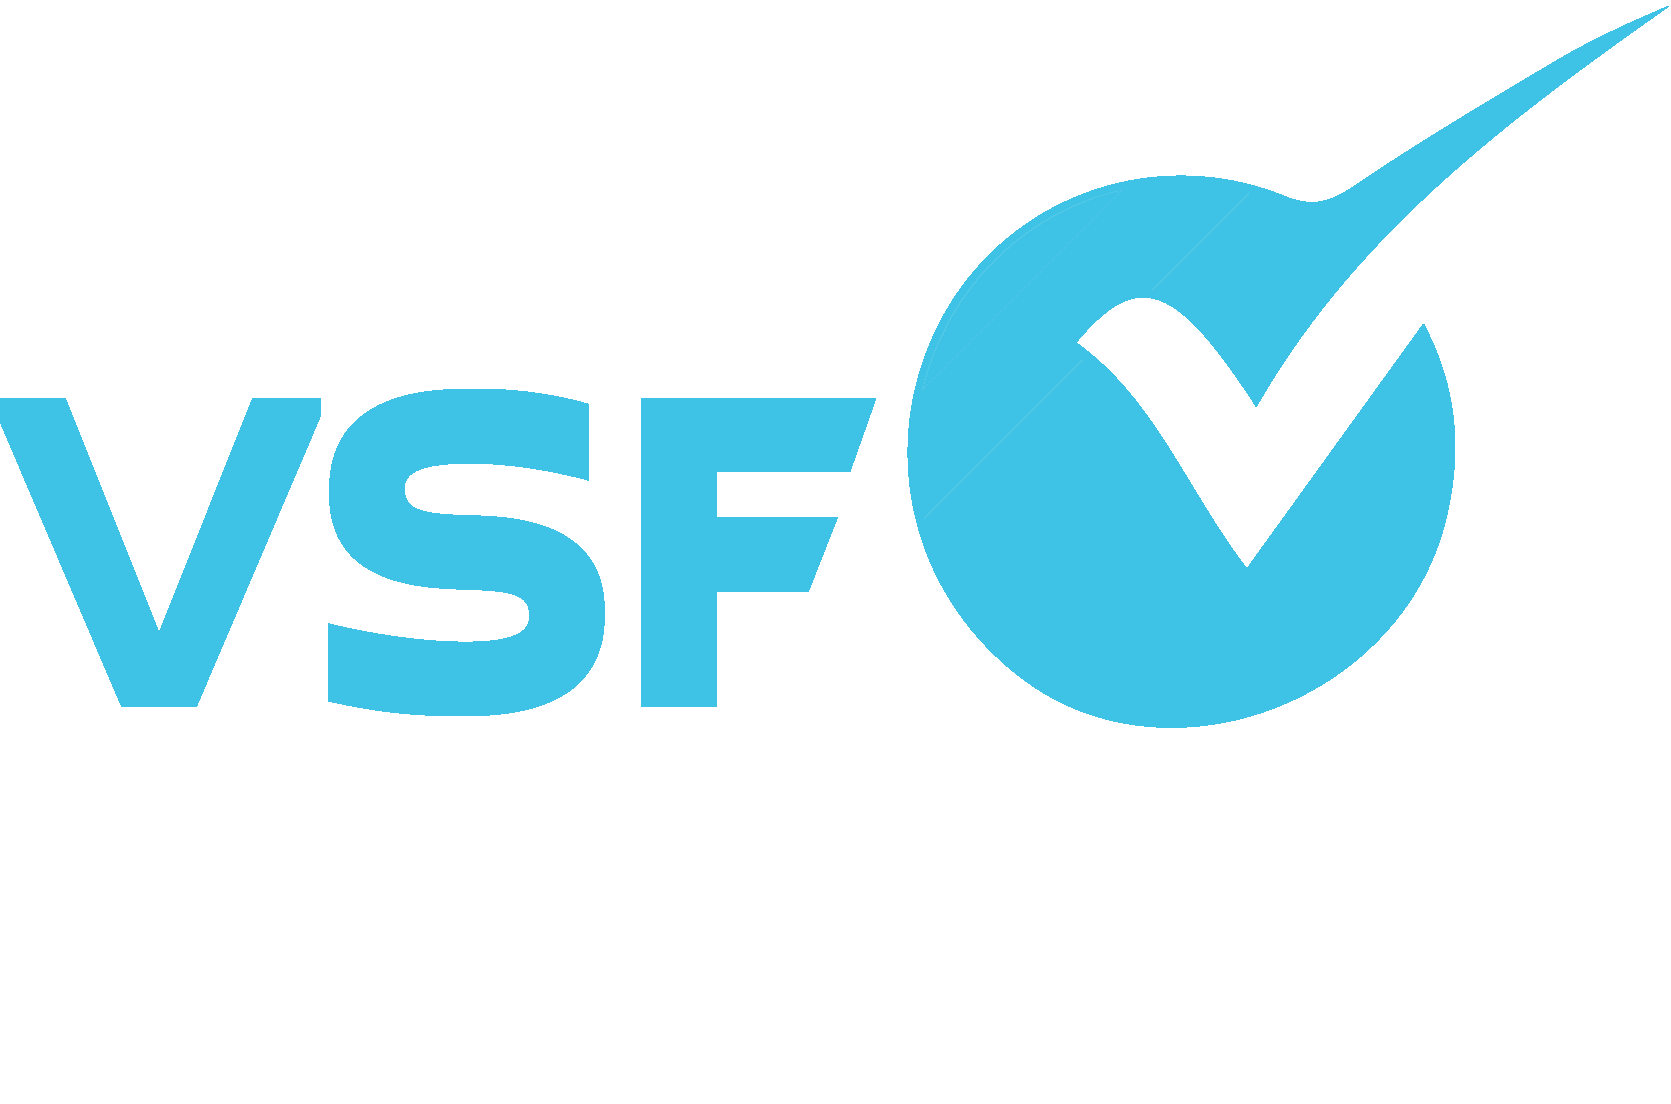 VSF is a Tampa website designer, Tampa Online Marketing, Tampa SEO Agency, and a Tampa Social Media Agency